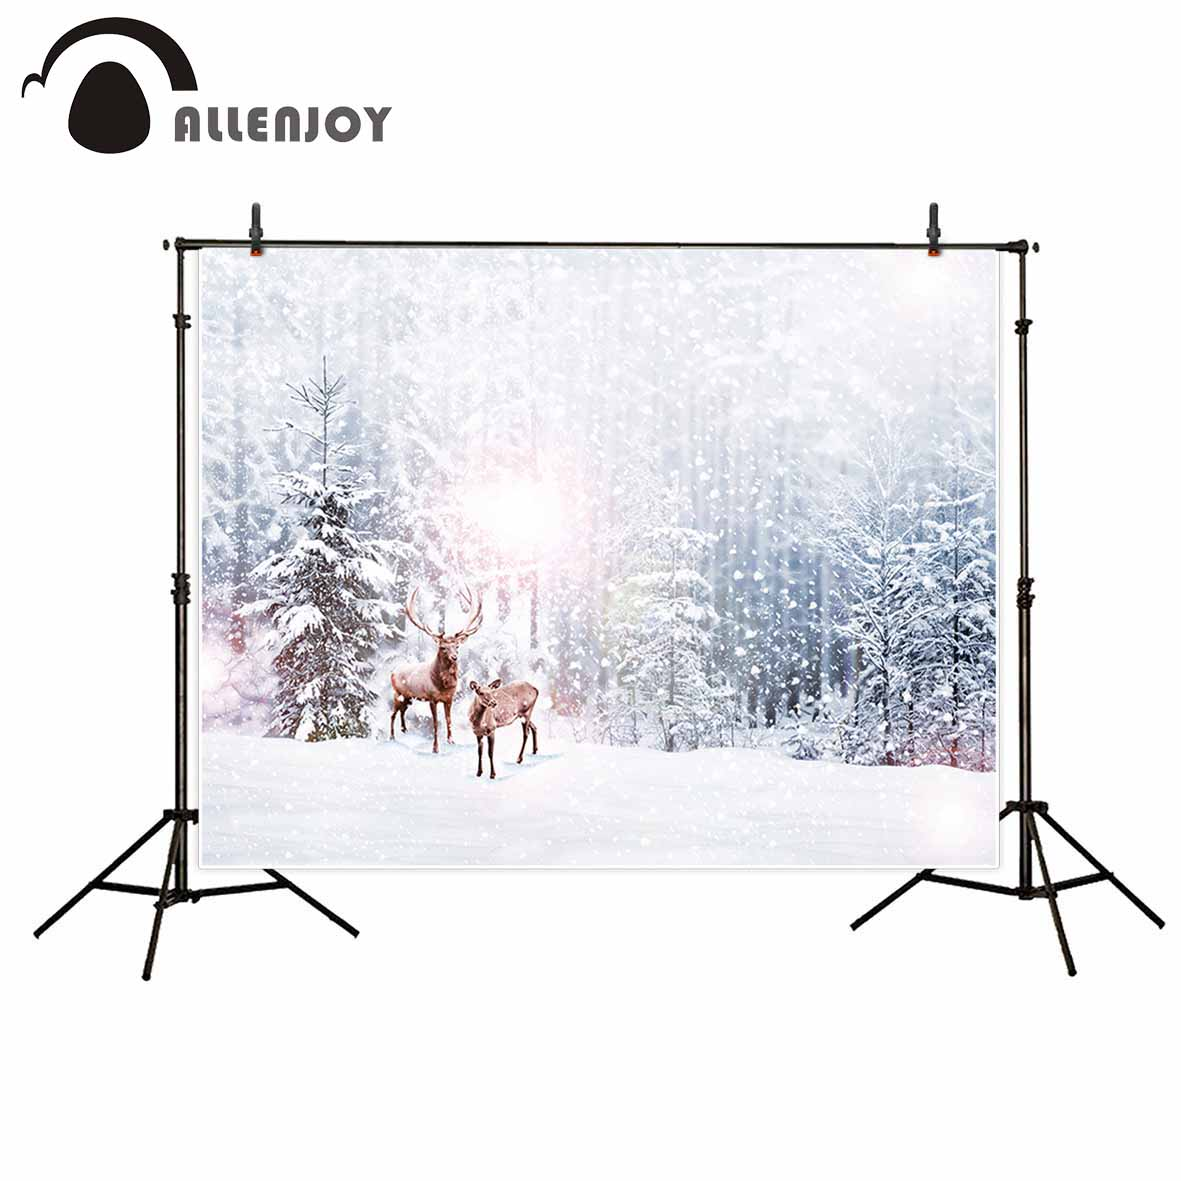 Allenjoy Winter background forest pine elk snow photography backdrops christmas decorations new backdrops photo studio free shipping 1pcs beon half helmet motorcycle popular harley style motorbike vintage helmets abs dot approved motorcycle helmet